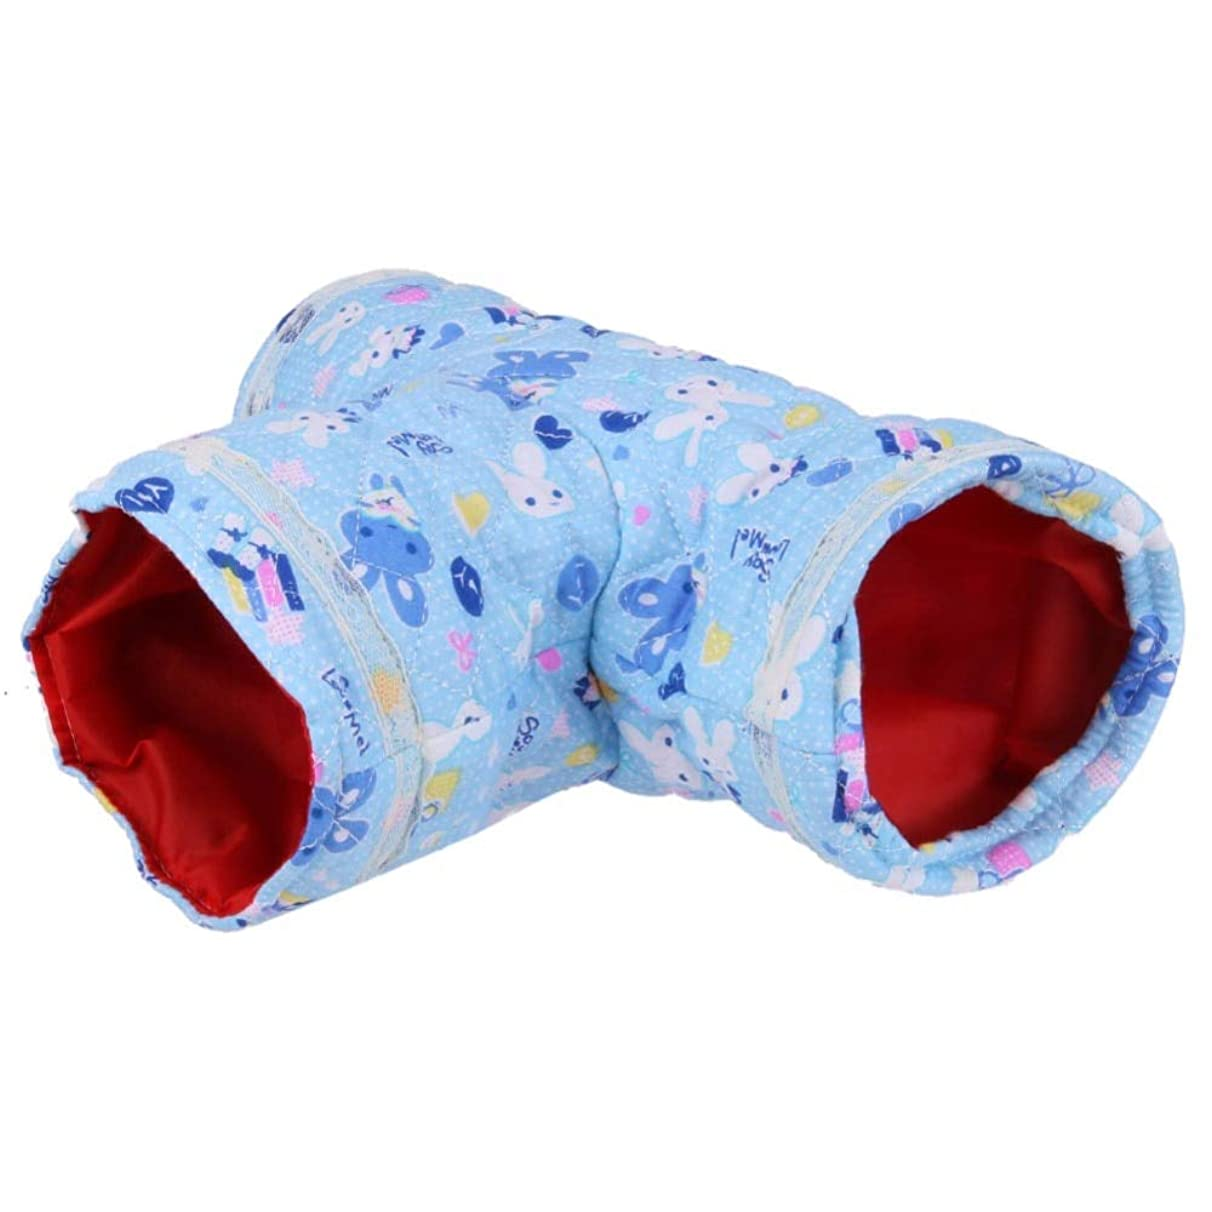 Ants-Store - Small Pet Cartoon Tubes Hamster Toy Tunnel Bed Cute Nest Spring and Autumn Small Animals Toys E5M1